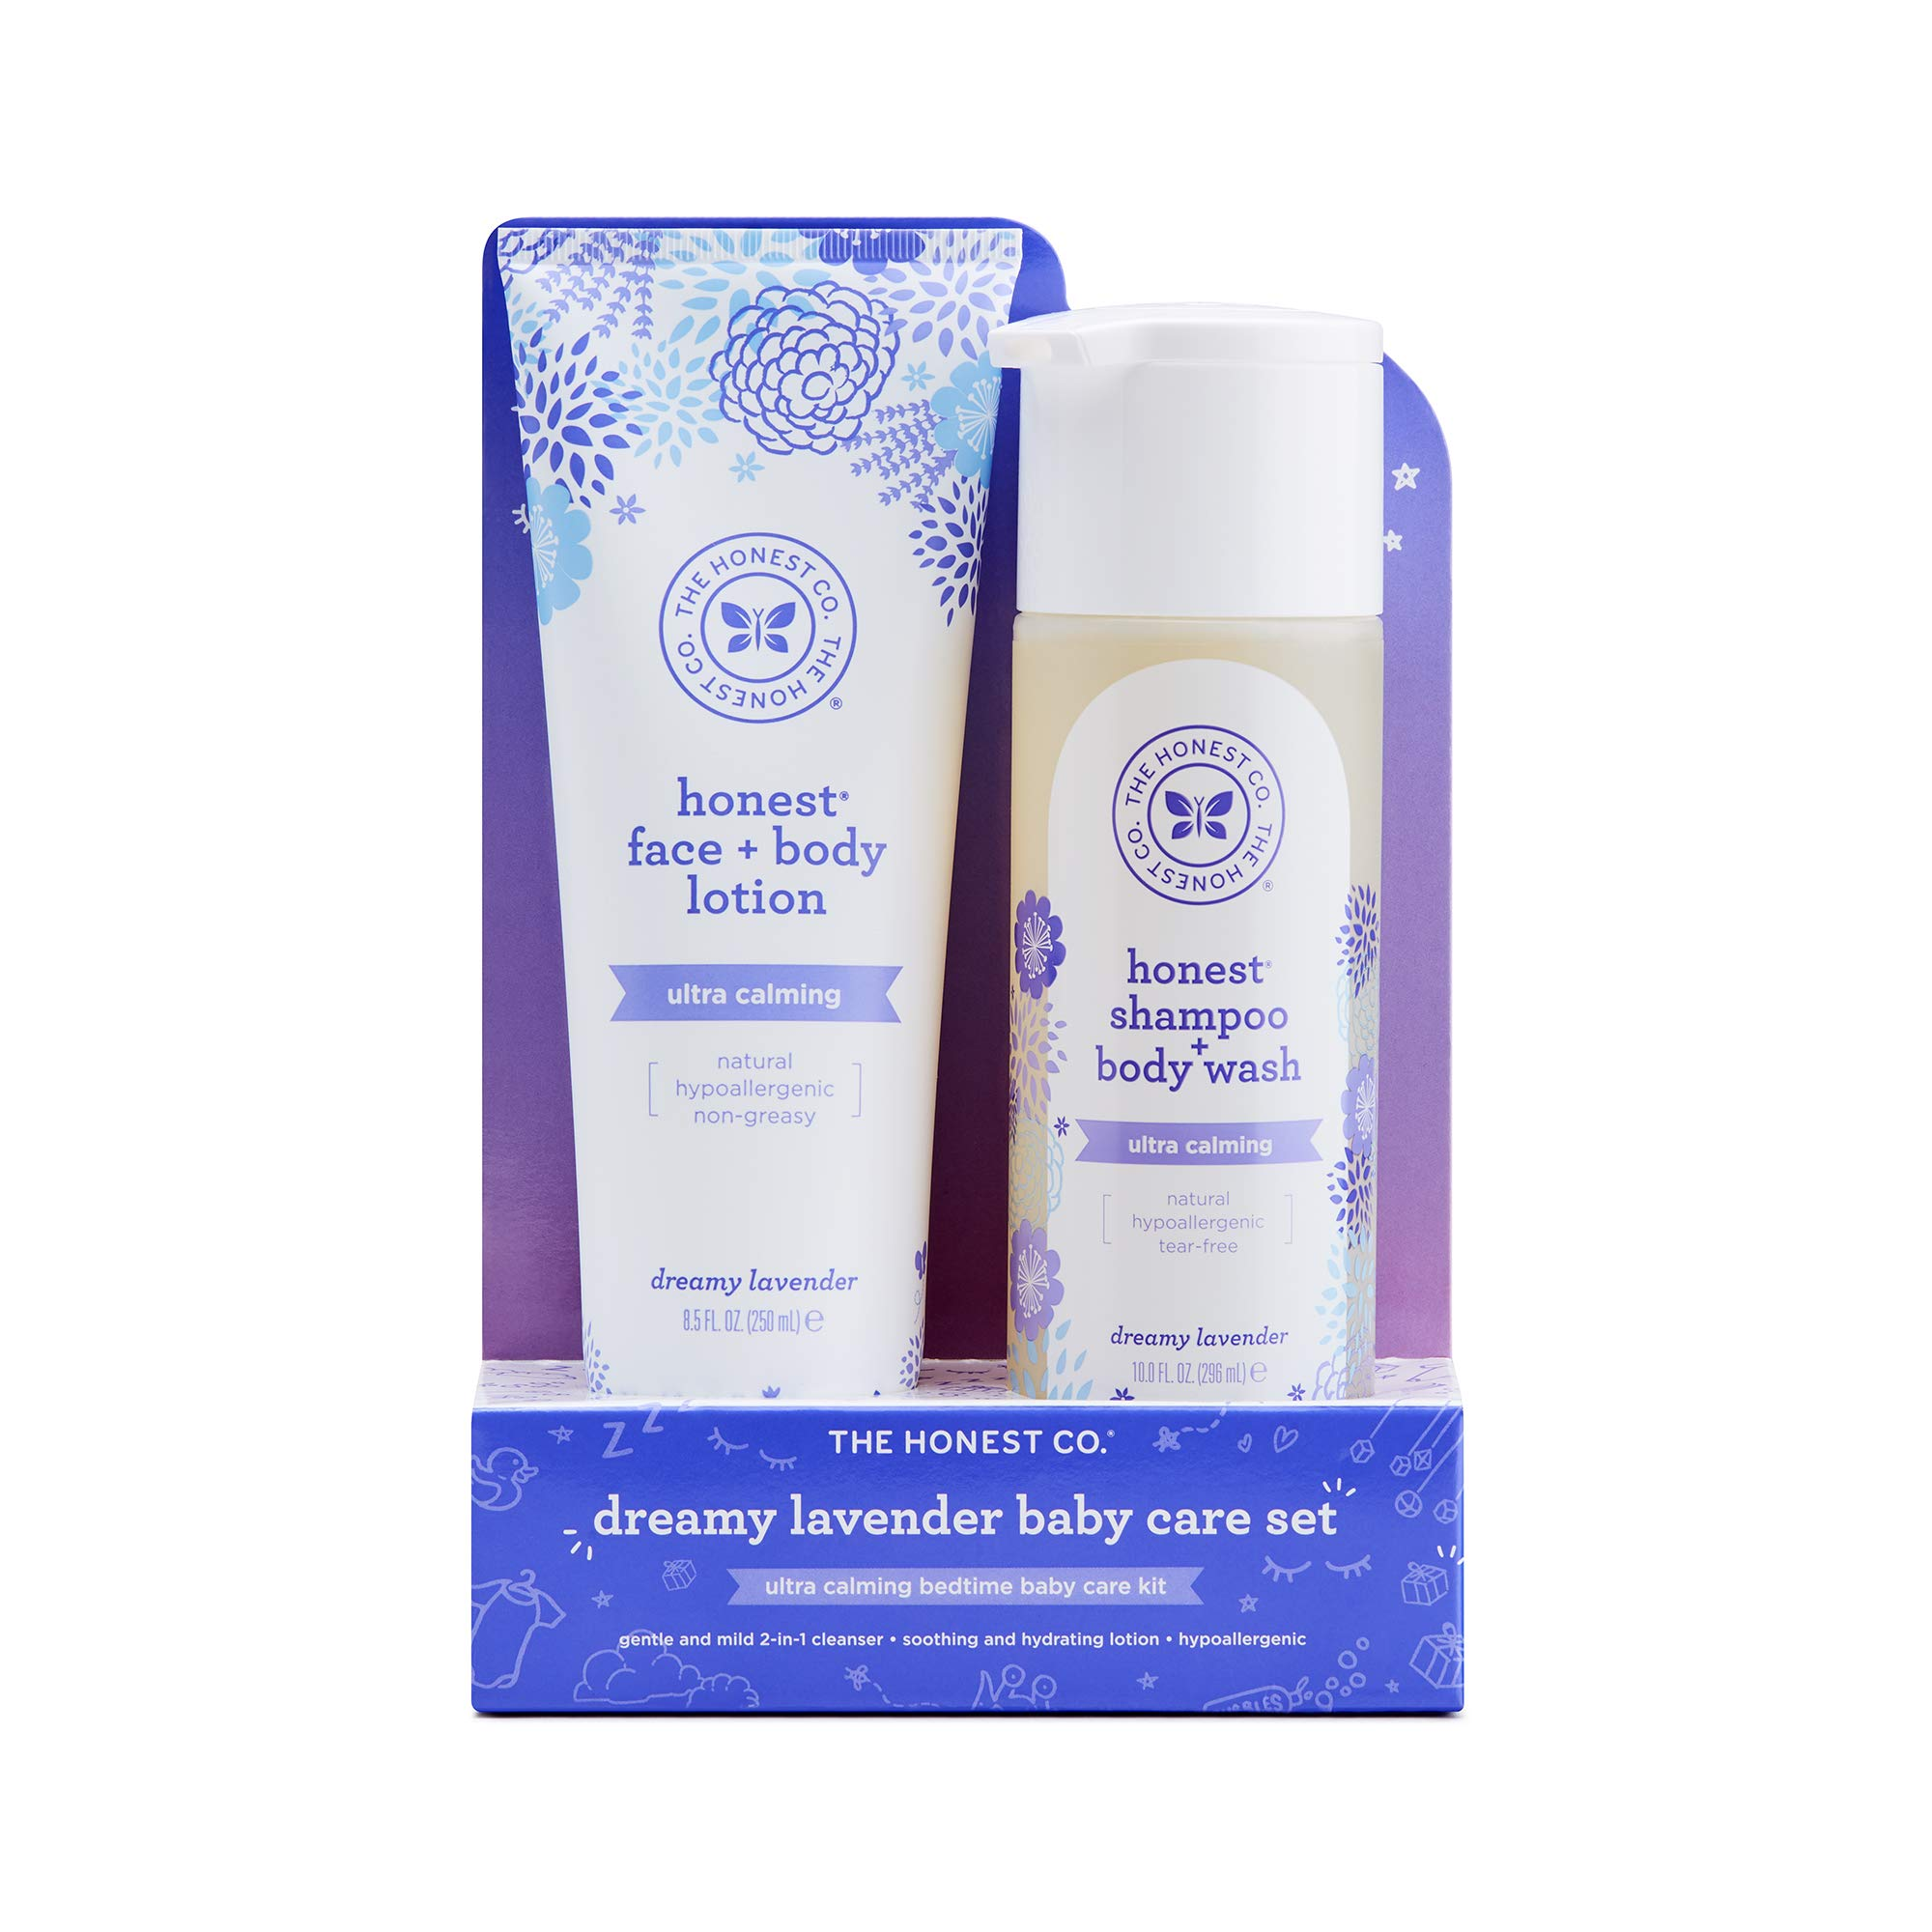 The Honest Company 2-Piece Dreamy Lavender Shampoo + Body Wash (10 fl. oz) & Face + Body Lotion (8.5 fl. oz.) Bundle | Tear Free | Naturally Derived Ingredients | Sulfate & Paraben Free Baby Bath by The Honest Company